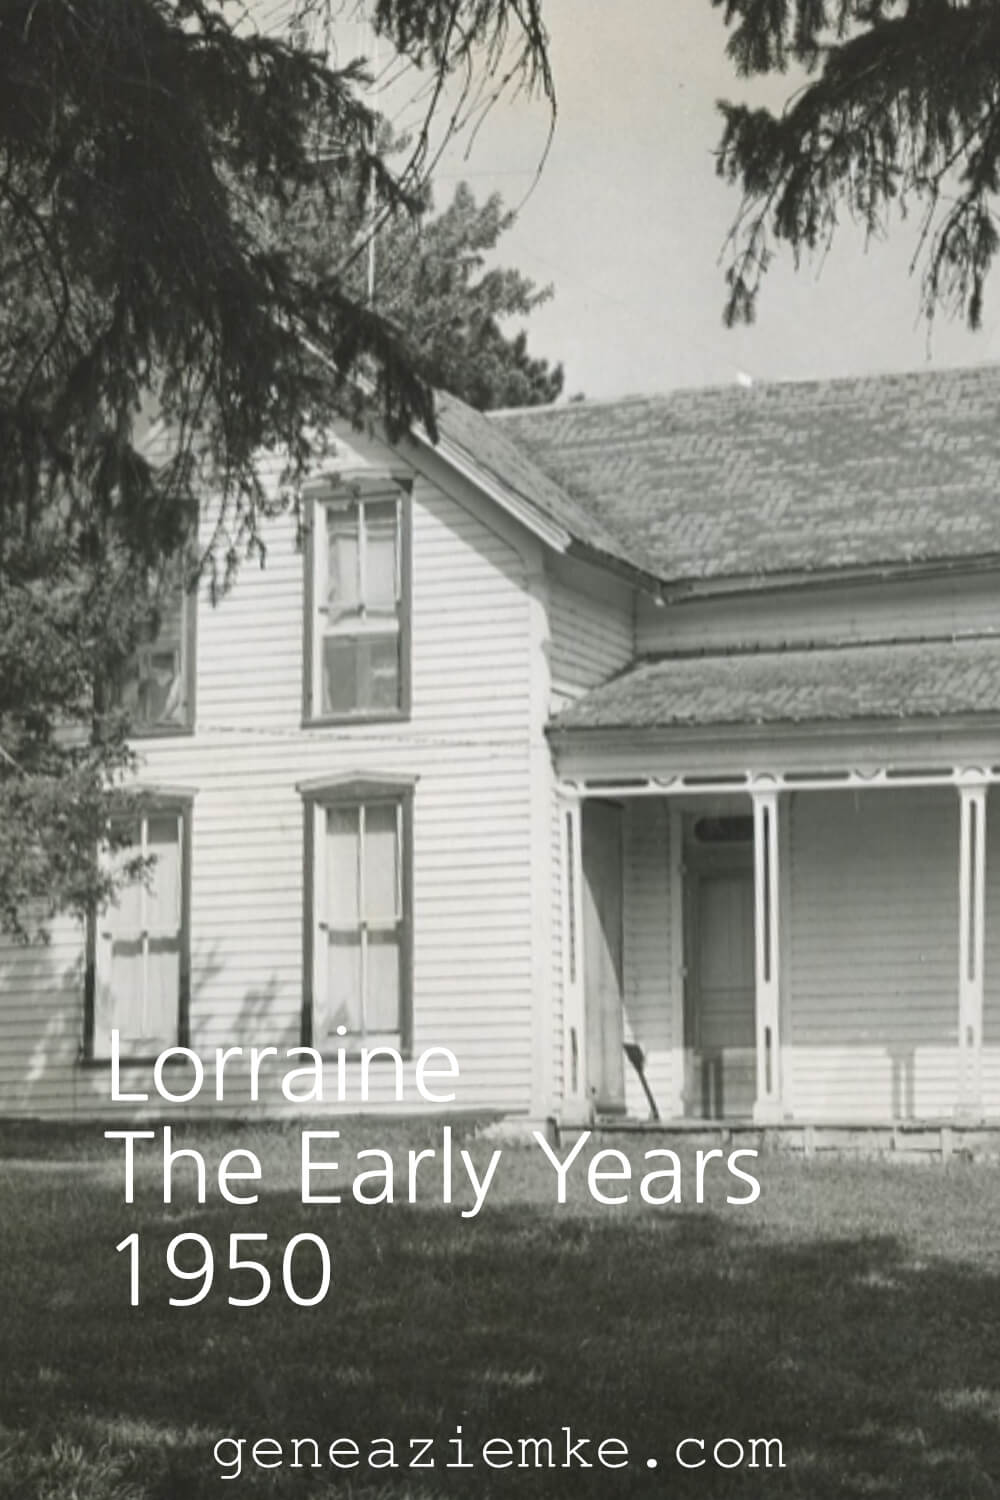 Lorraine - The Early Years - 1950